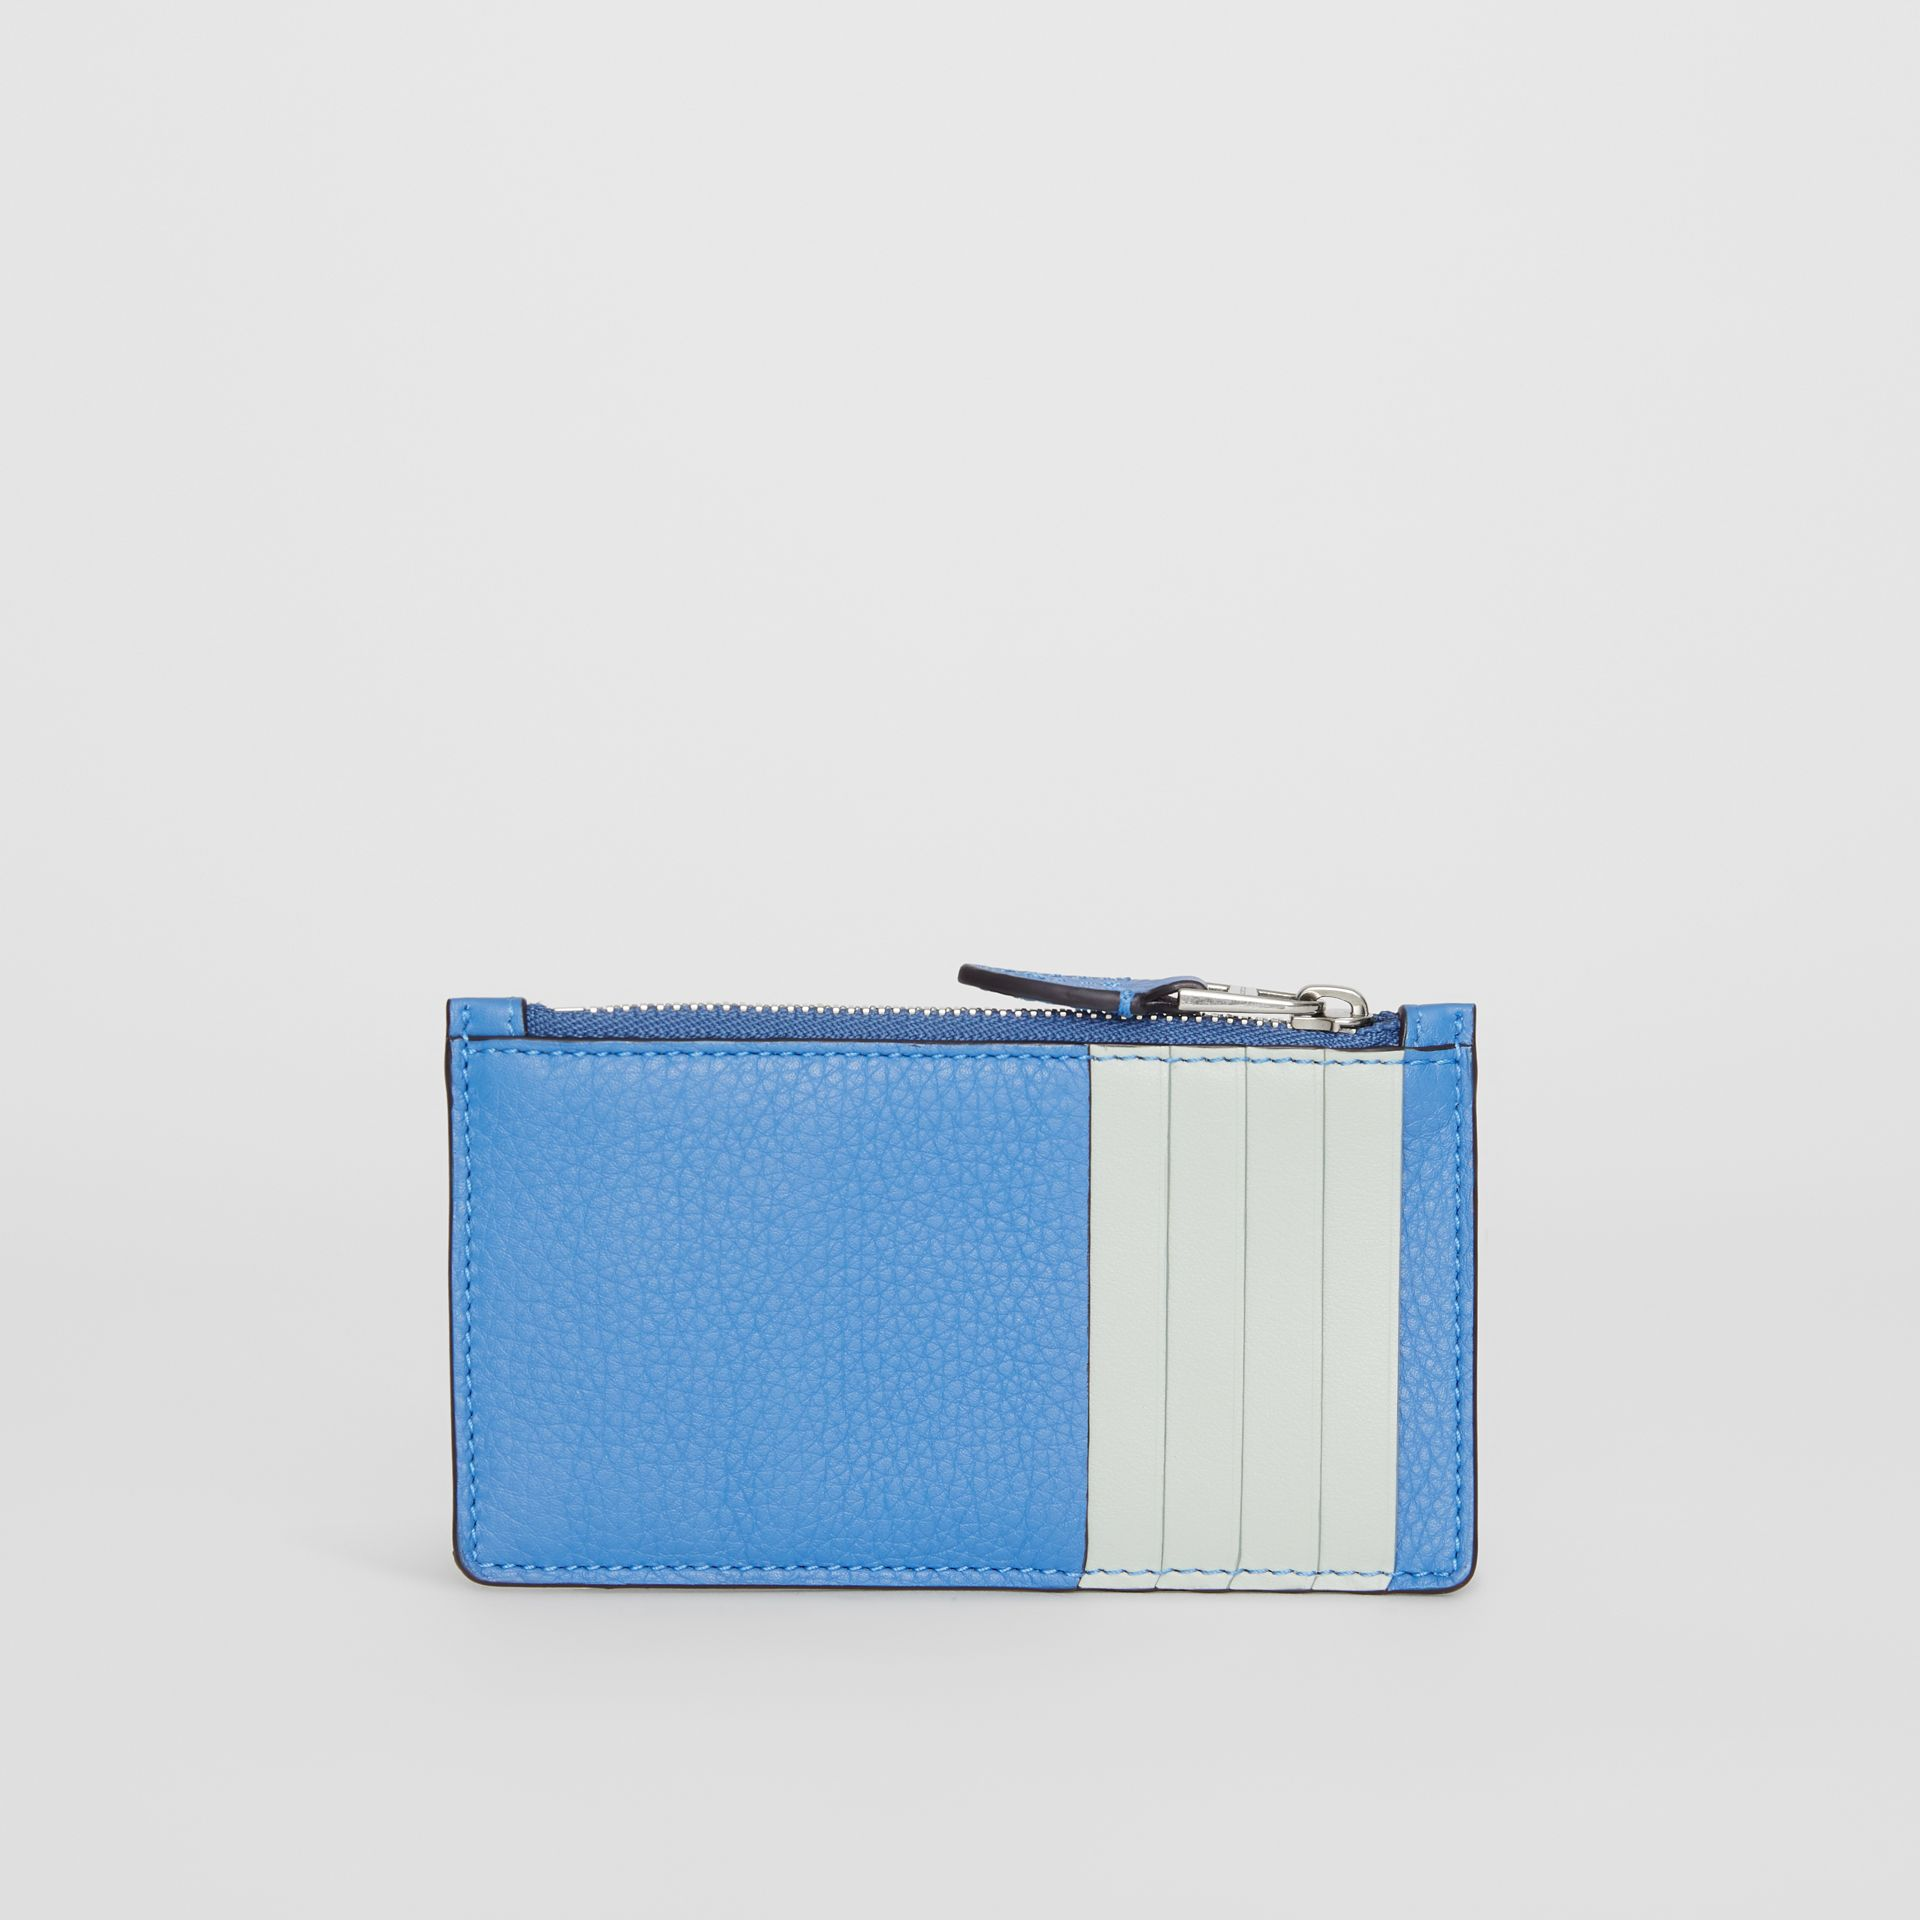 Two-tone Leather Card Case in Hydrangea Blue - Women | Burberry Australia - gallery image 5